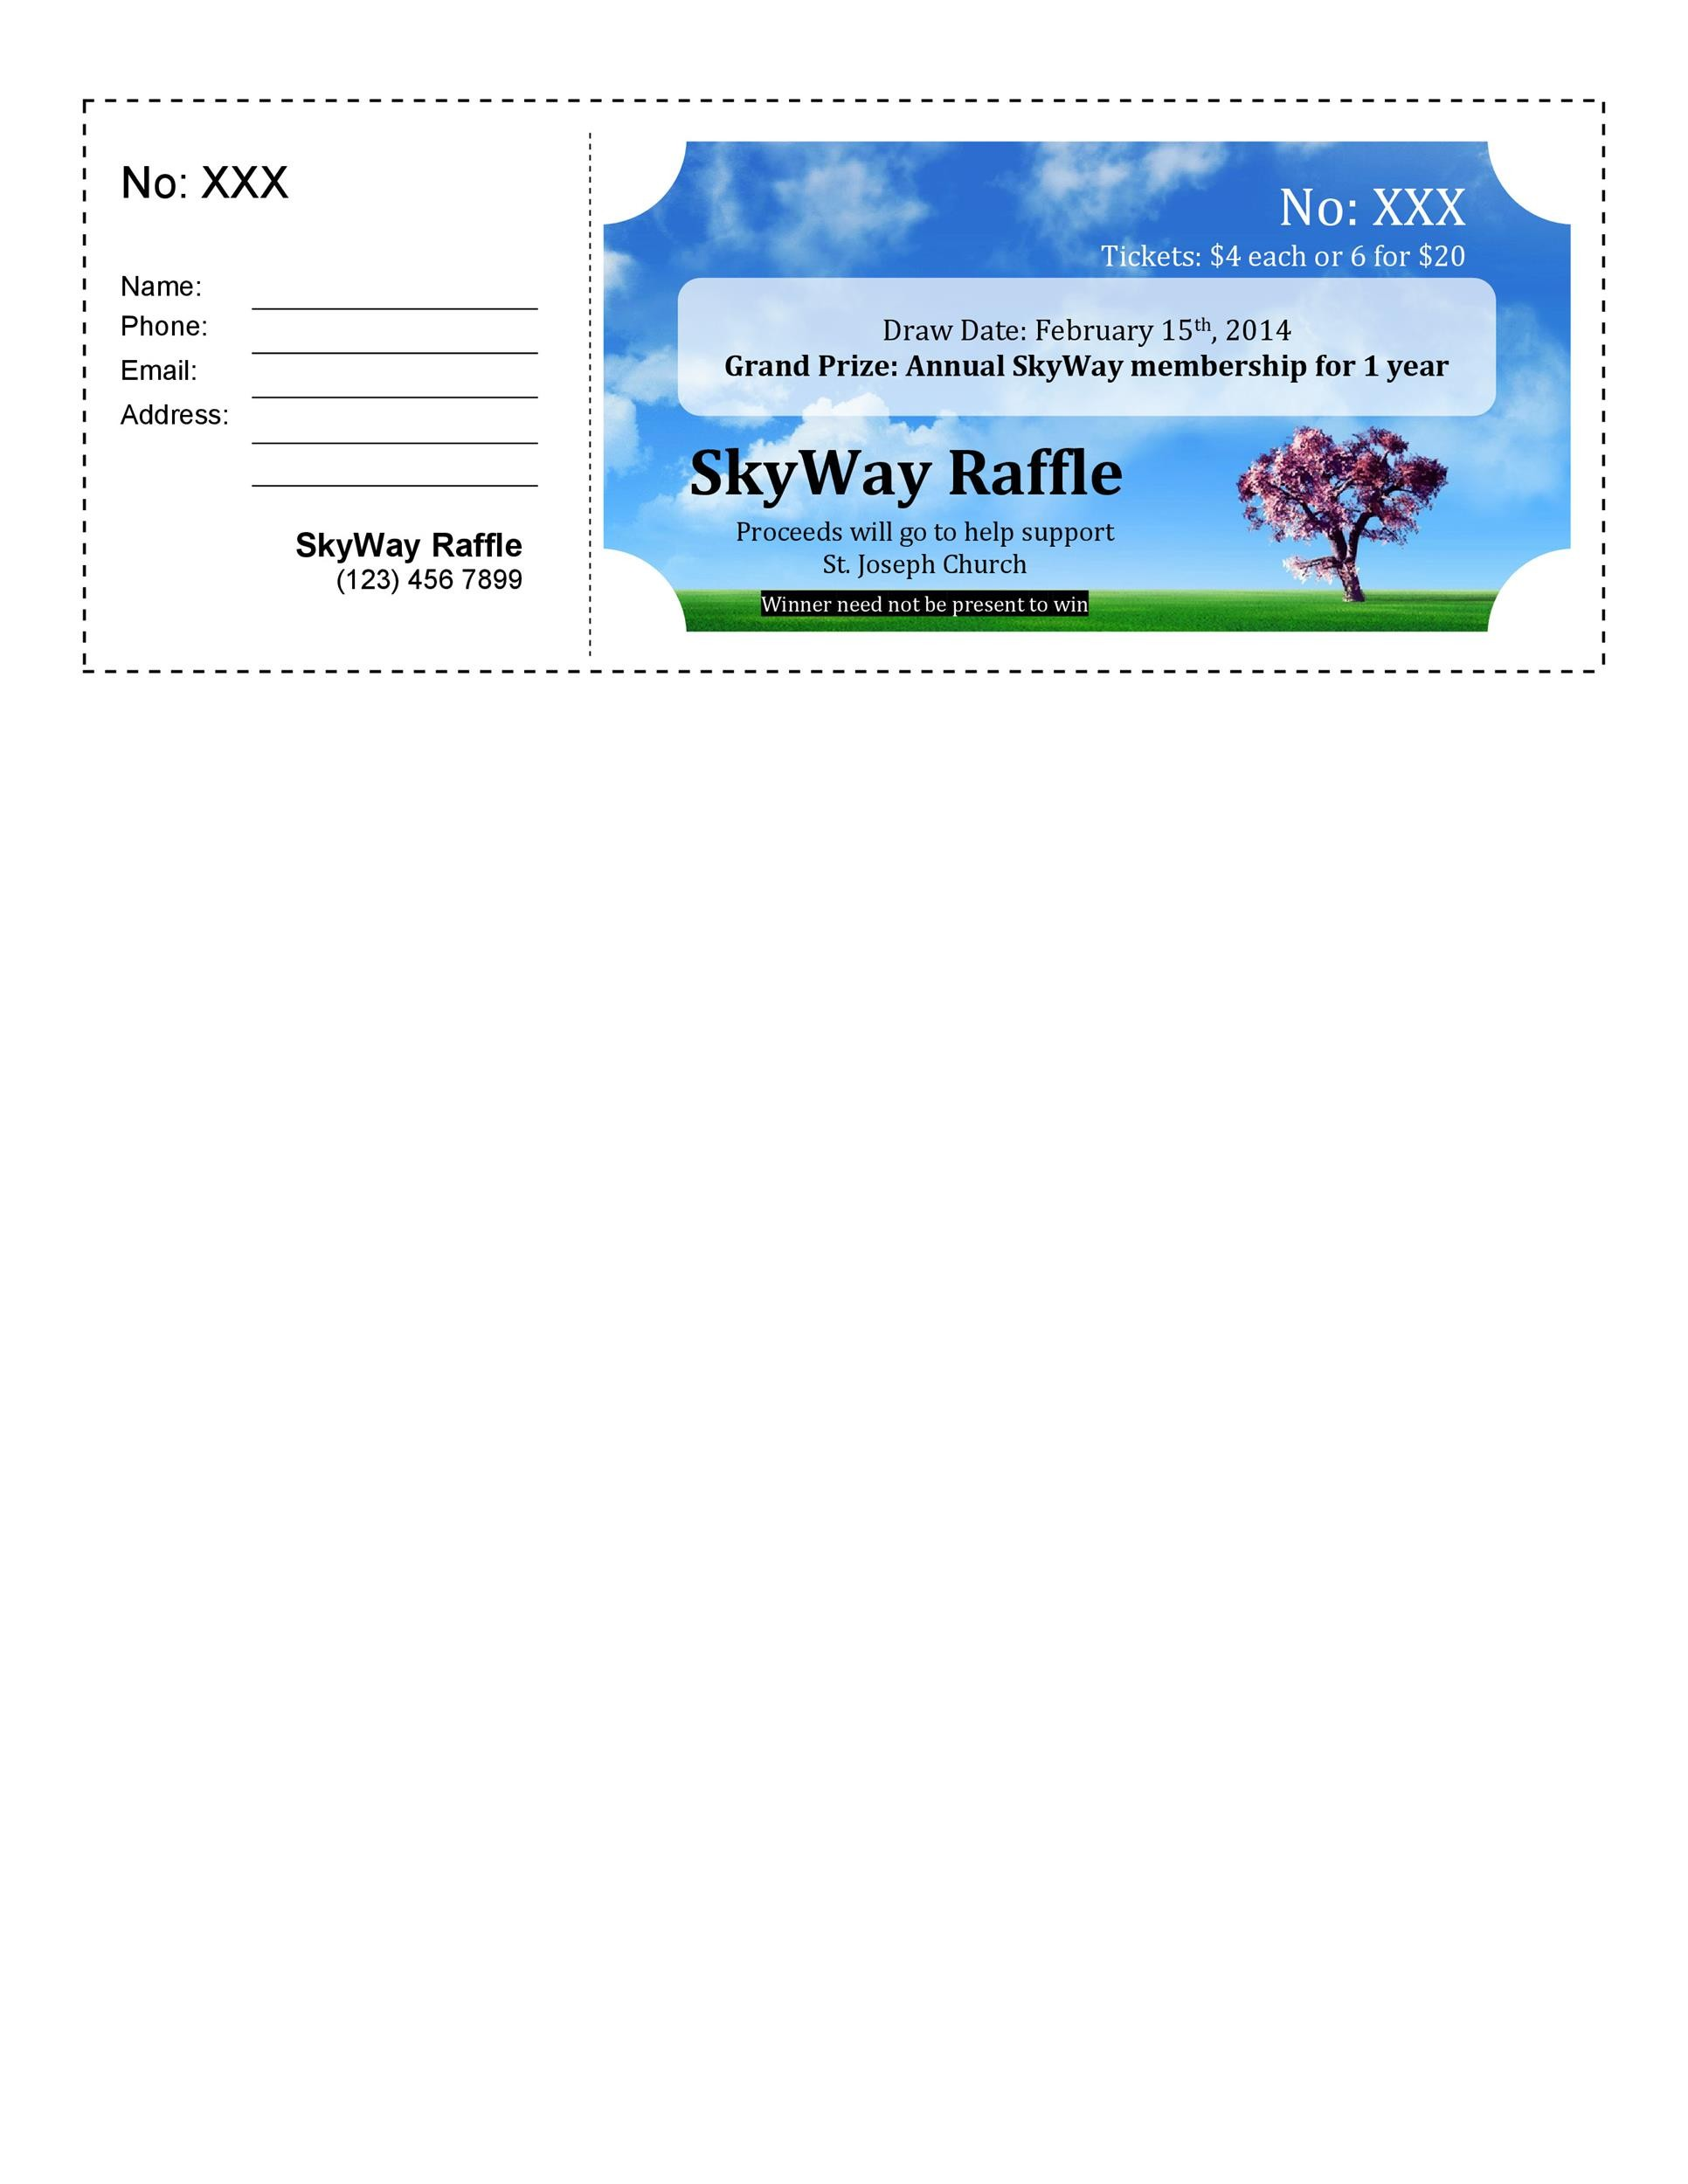 40 Free Editable Raffle Movie Ticket Templates – Raffle Ticket Maker